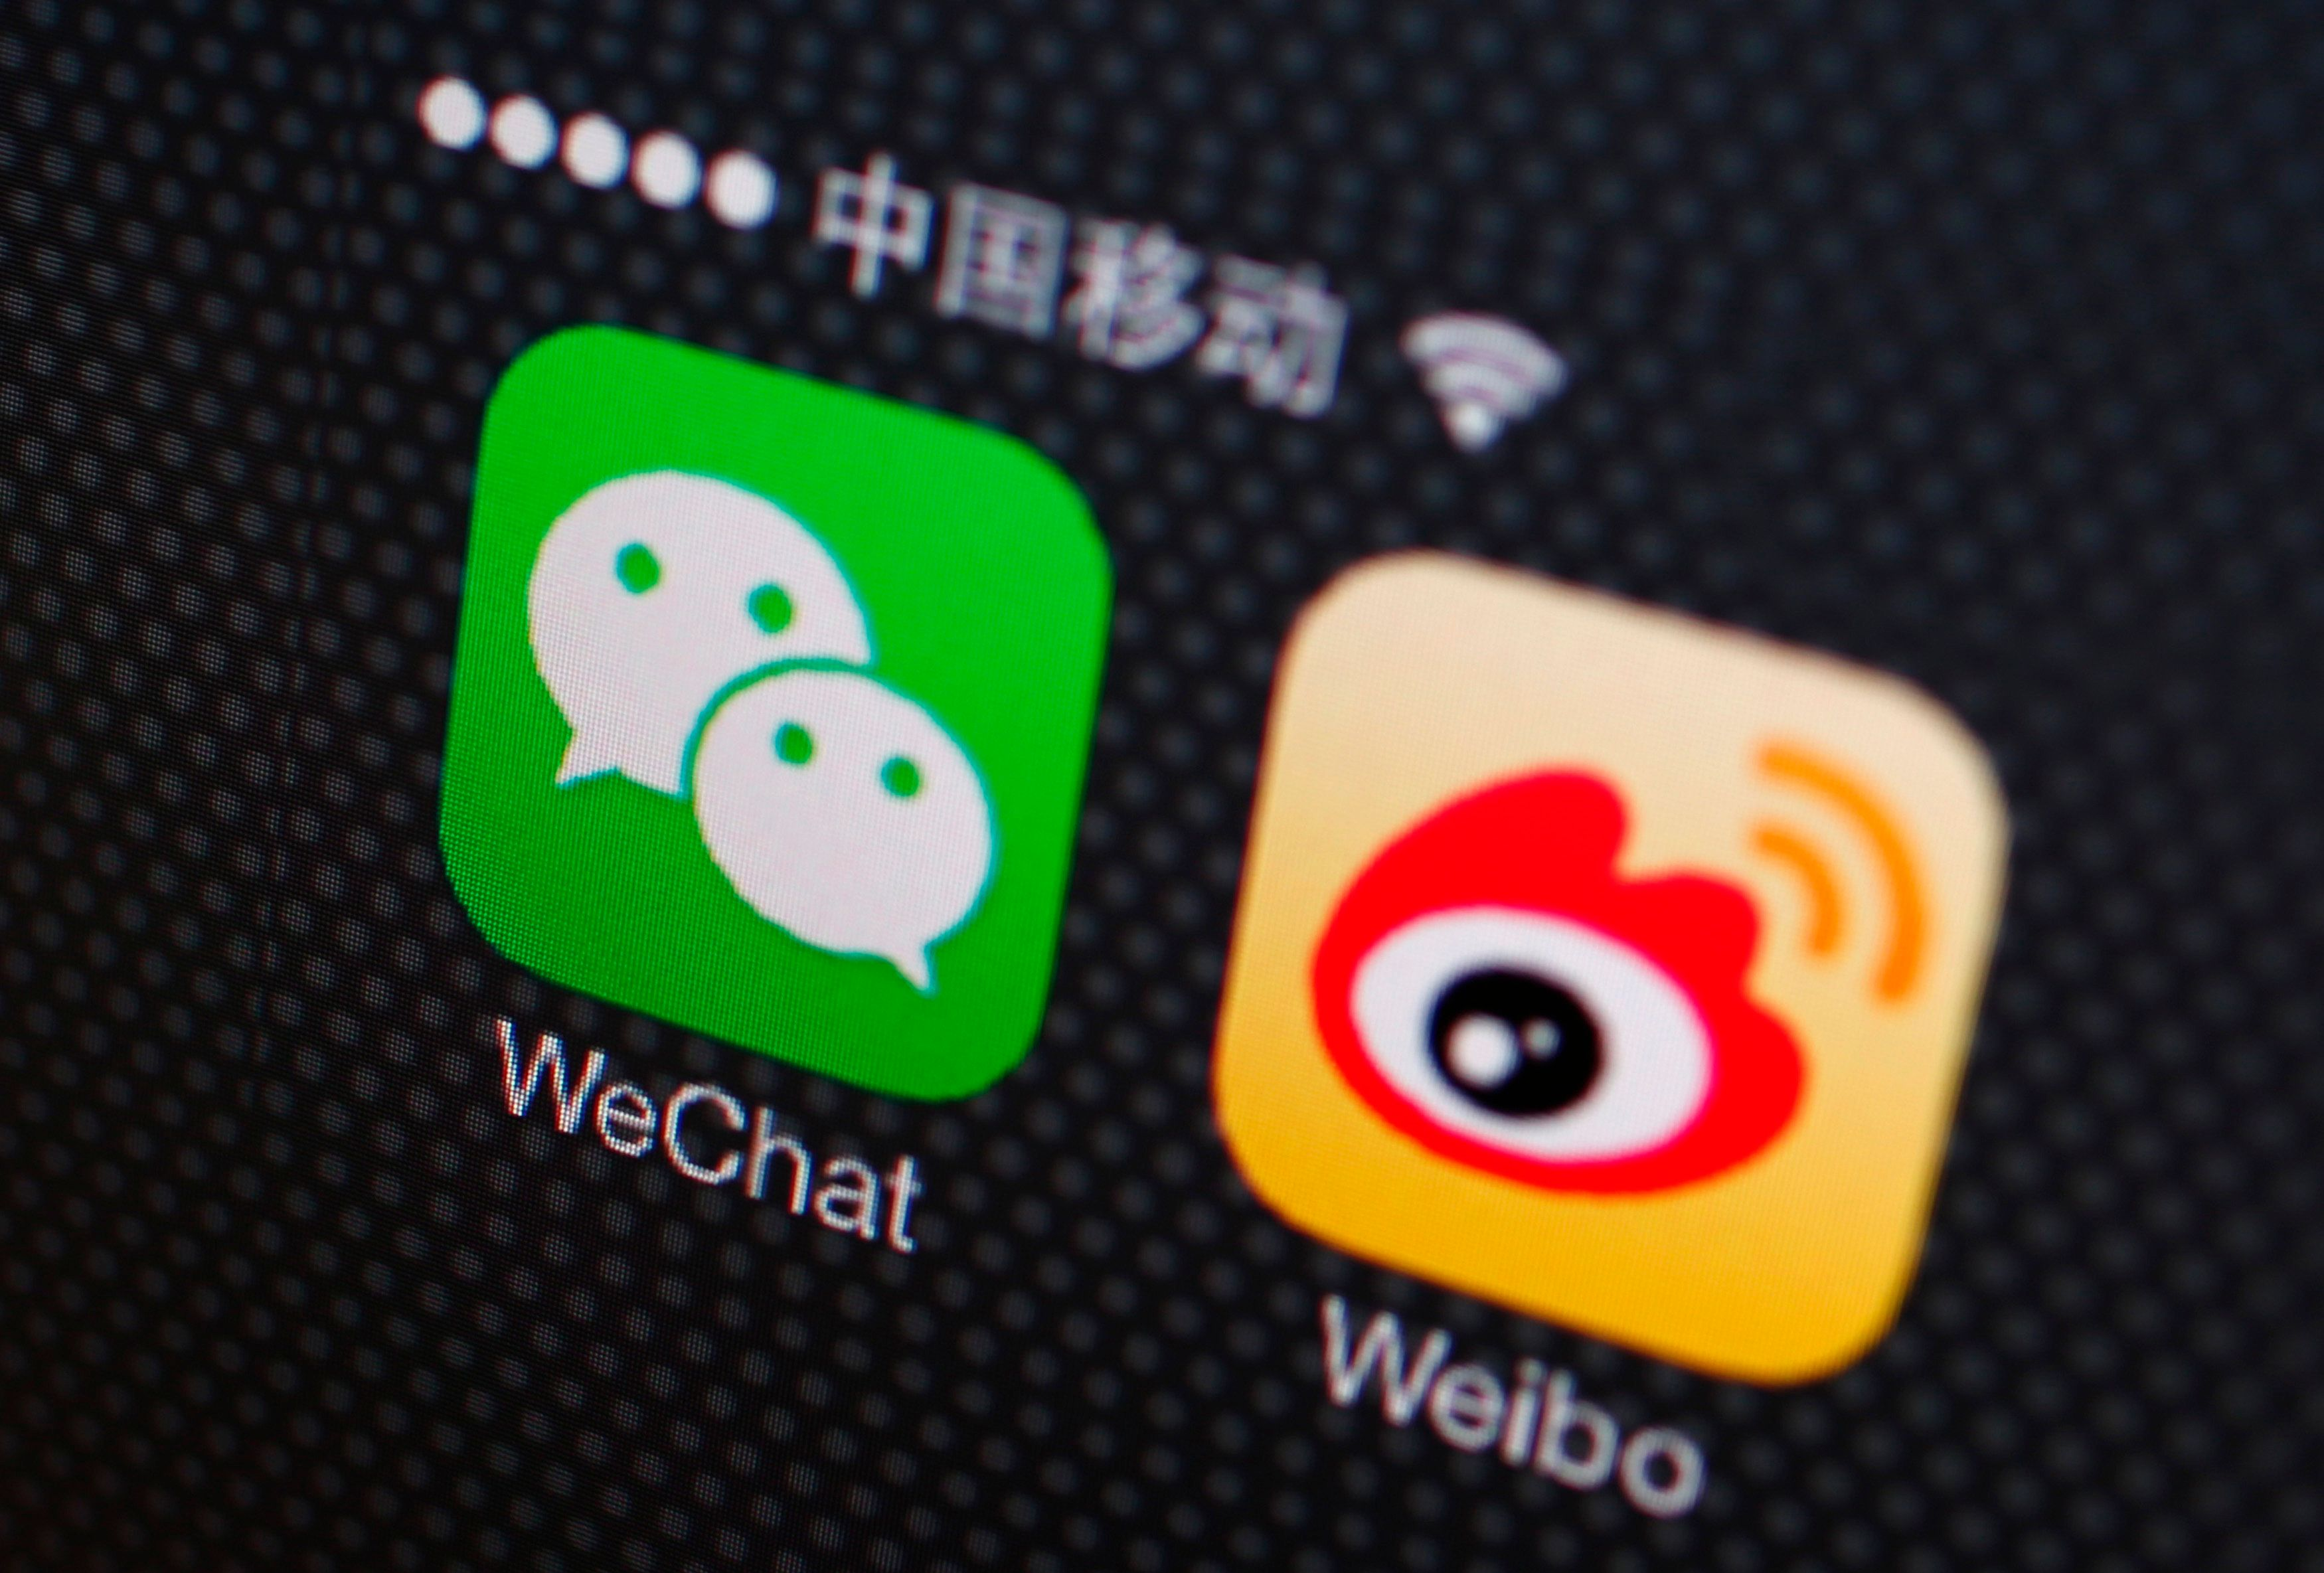 The fight against Sina Weibo's decision saw LGBTQ groups, advocates and gay Chinese speaking out through letters a